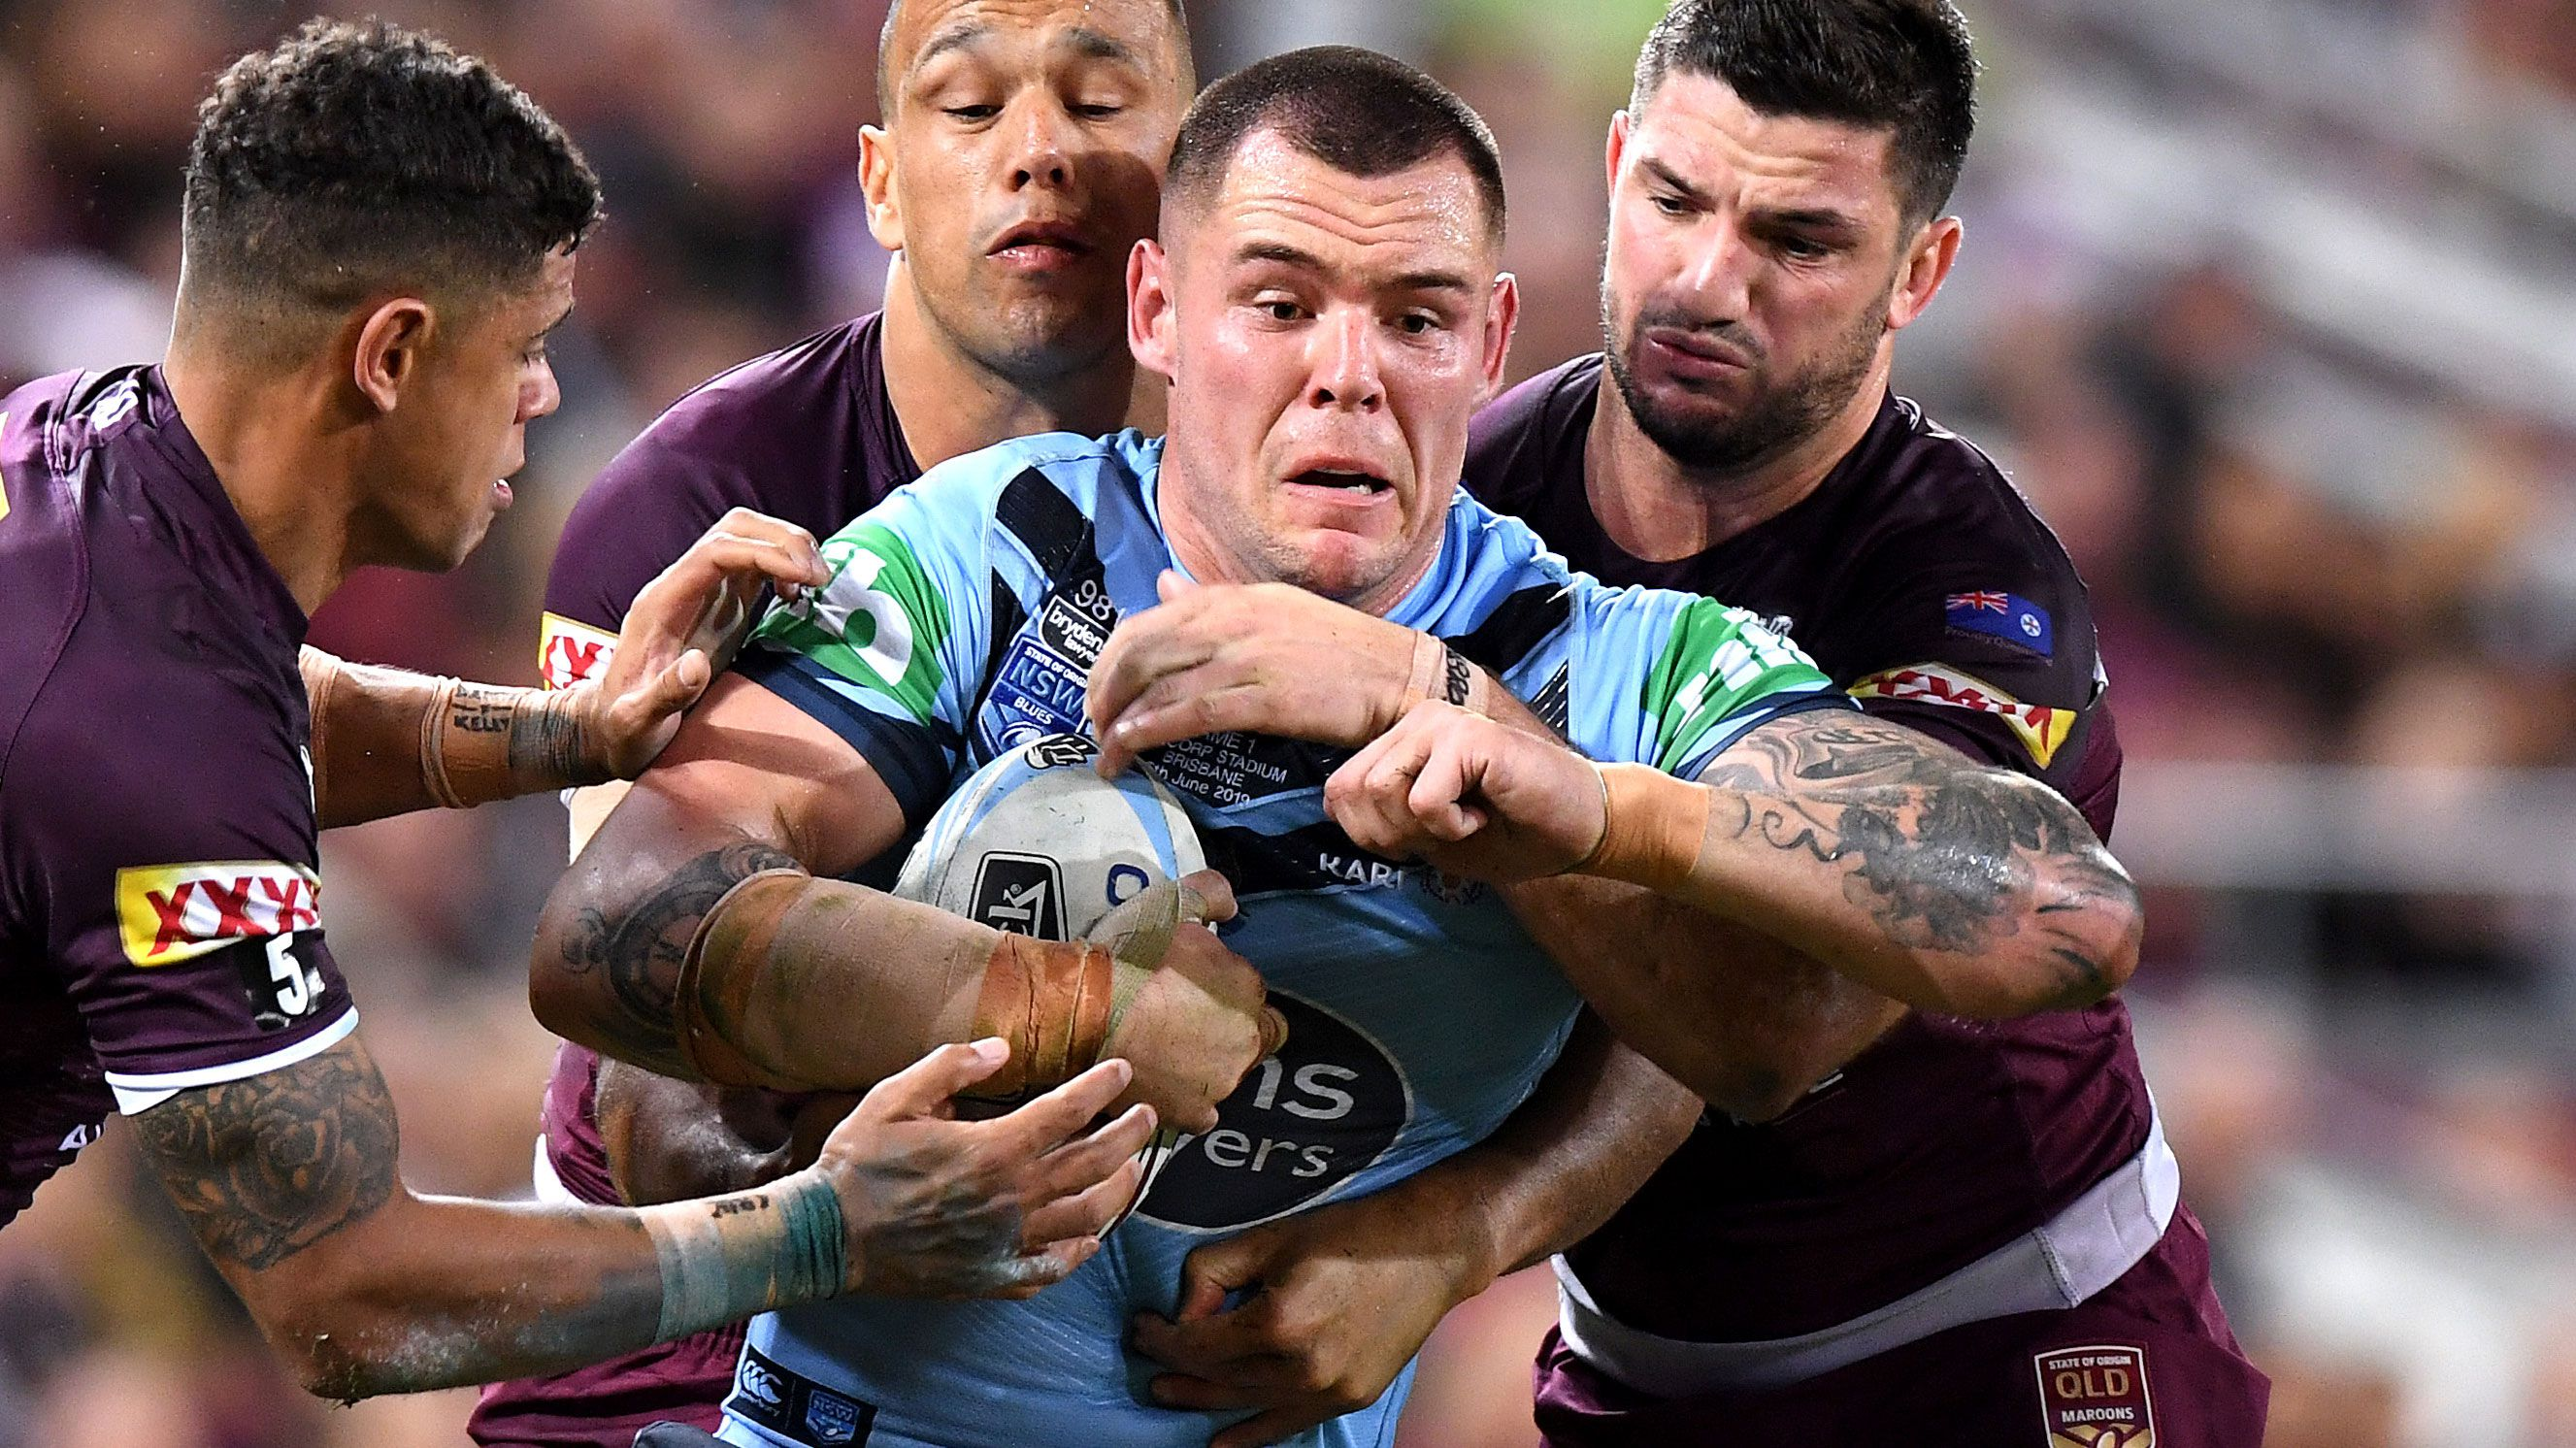 Huge blow for NSW, Knights after fractured wrist confirmed for David Klemmer